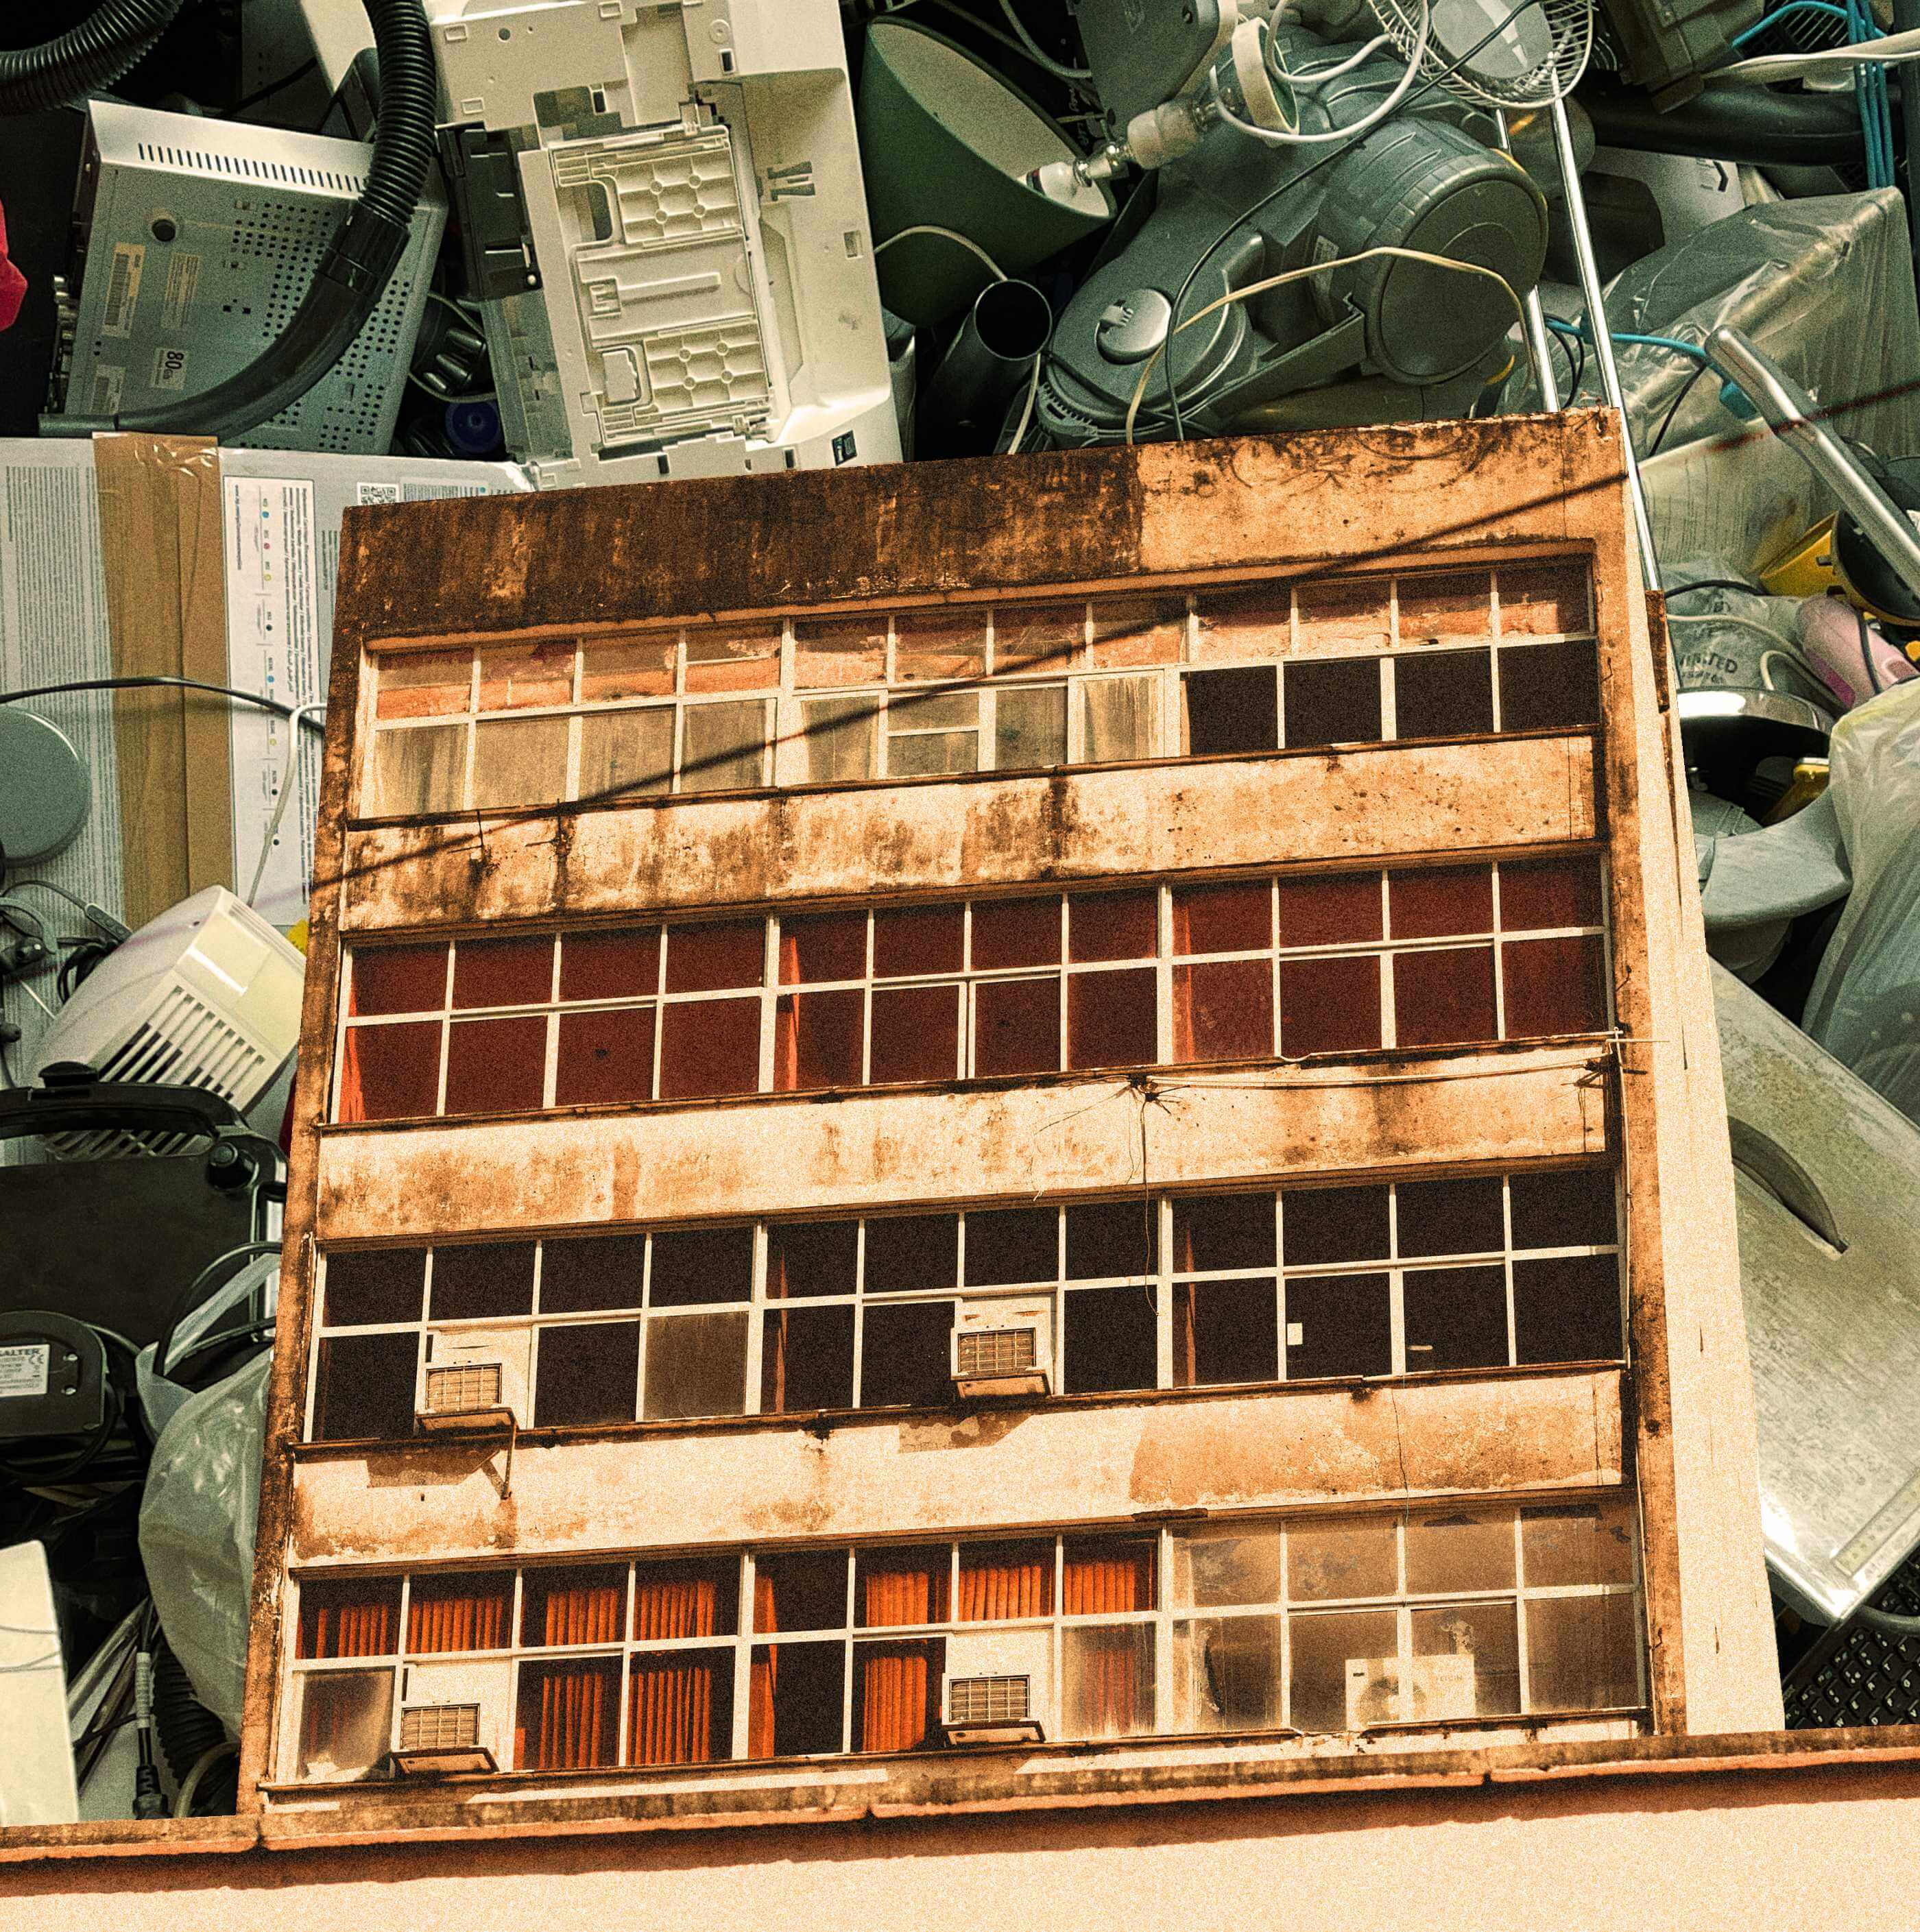 A worn down building superimposed over heaps of plastic waste